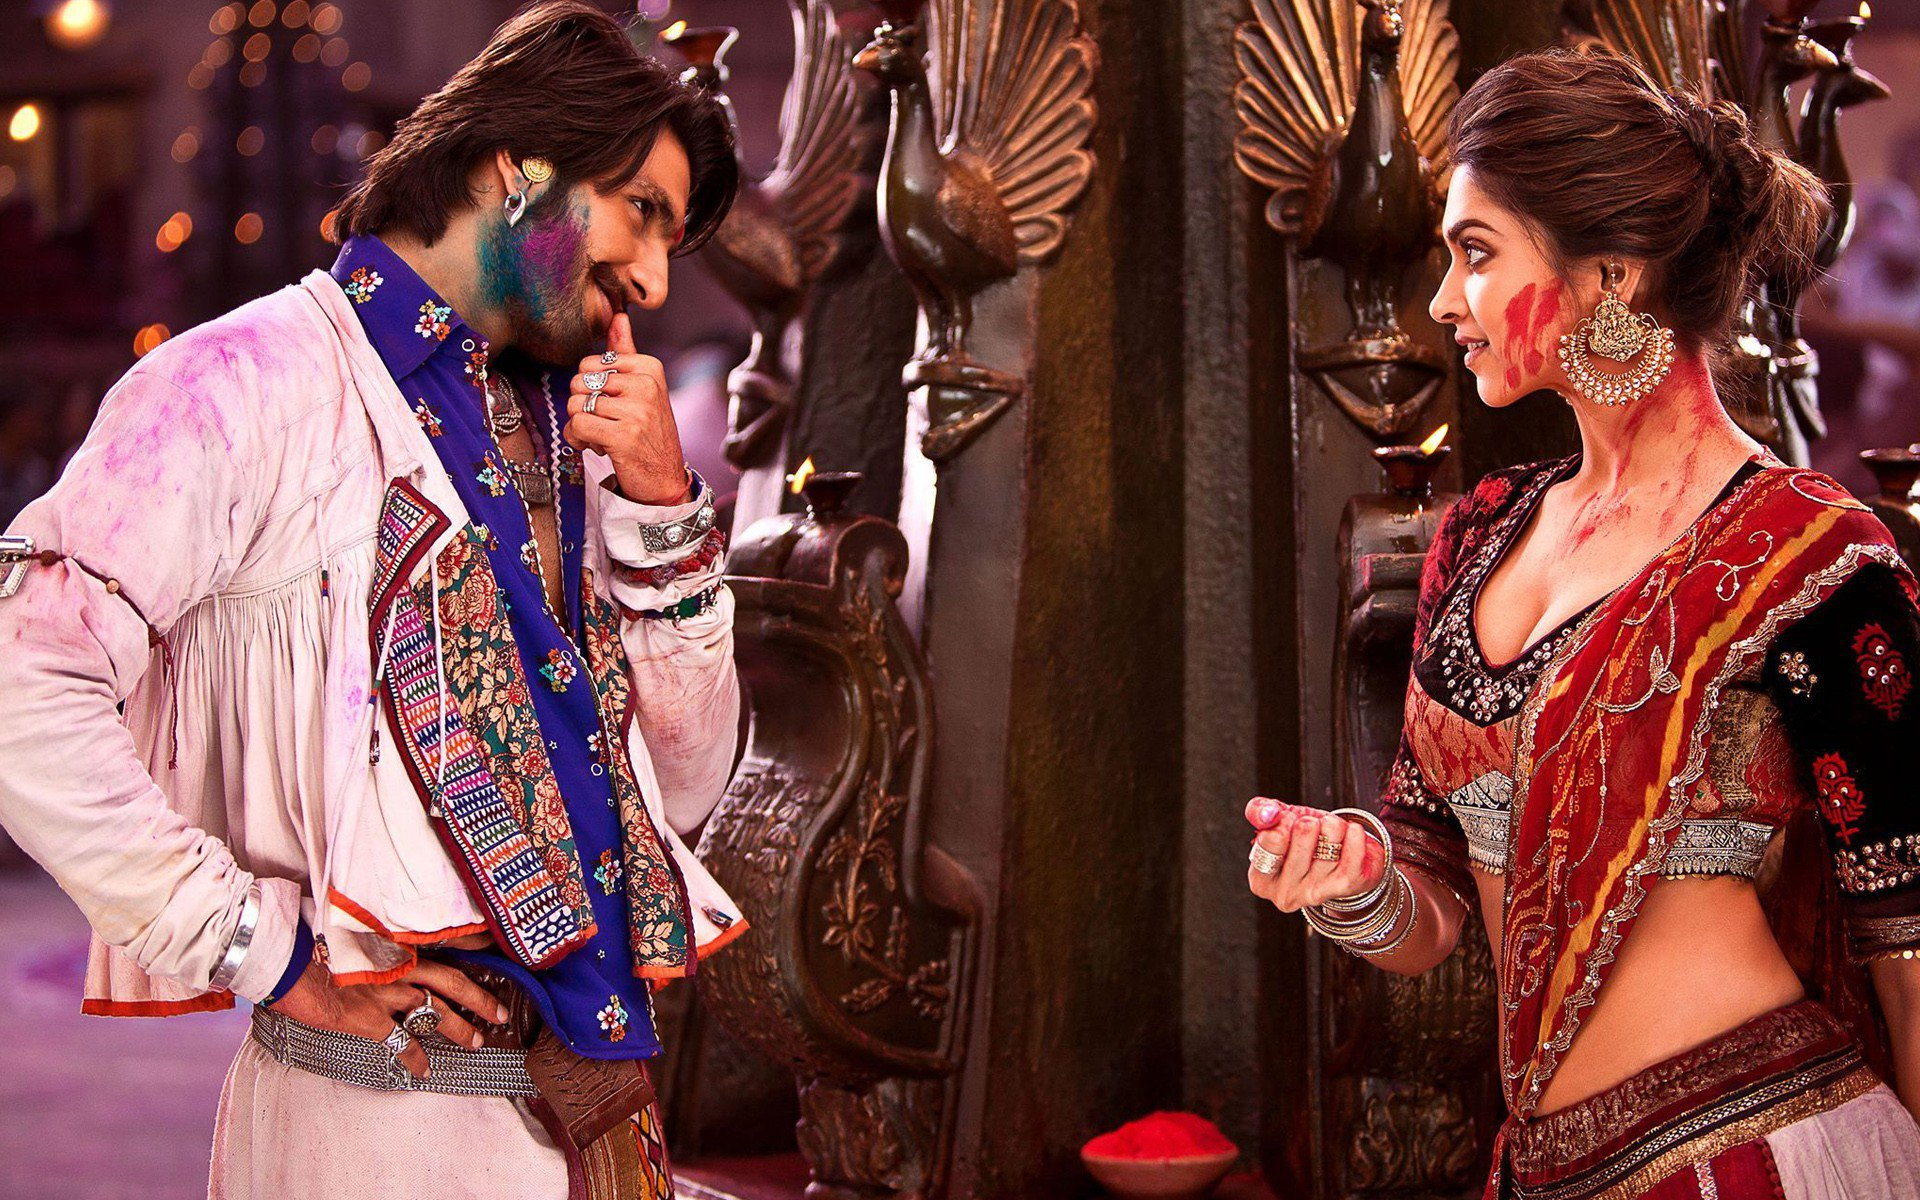 ram leela movie scene, hd indian celebrities, 4k wallpapers, images